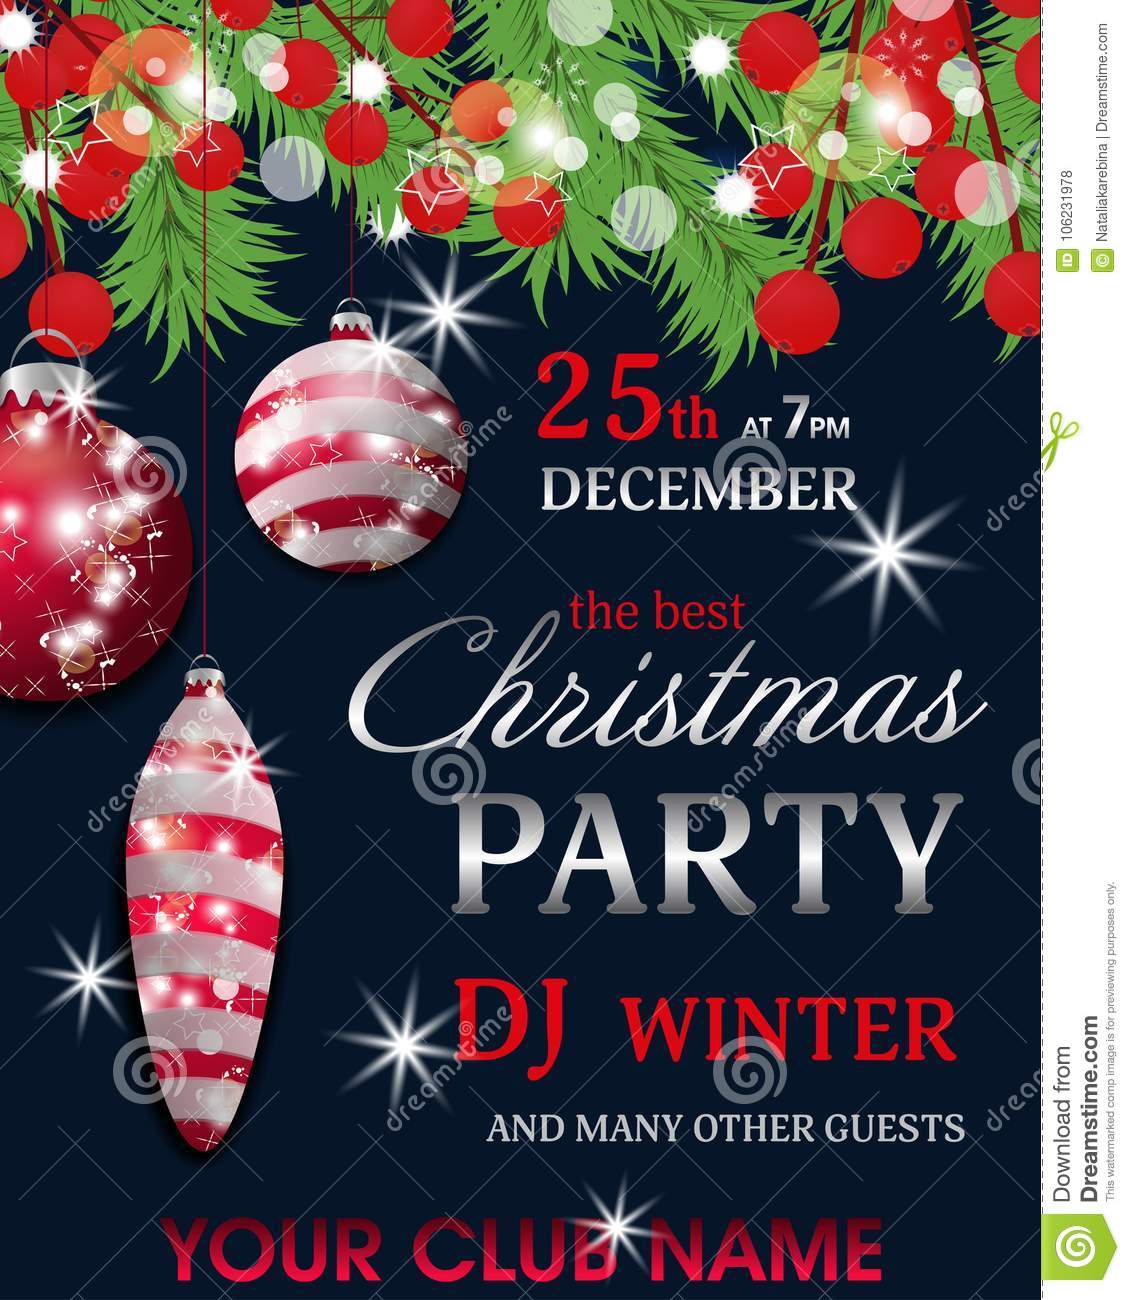 Christmas Party Invitation Template Dark Blue Background With Fir